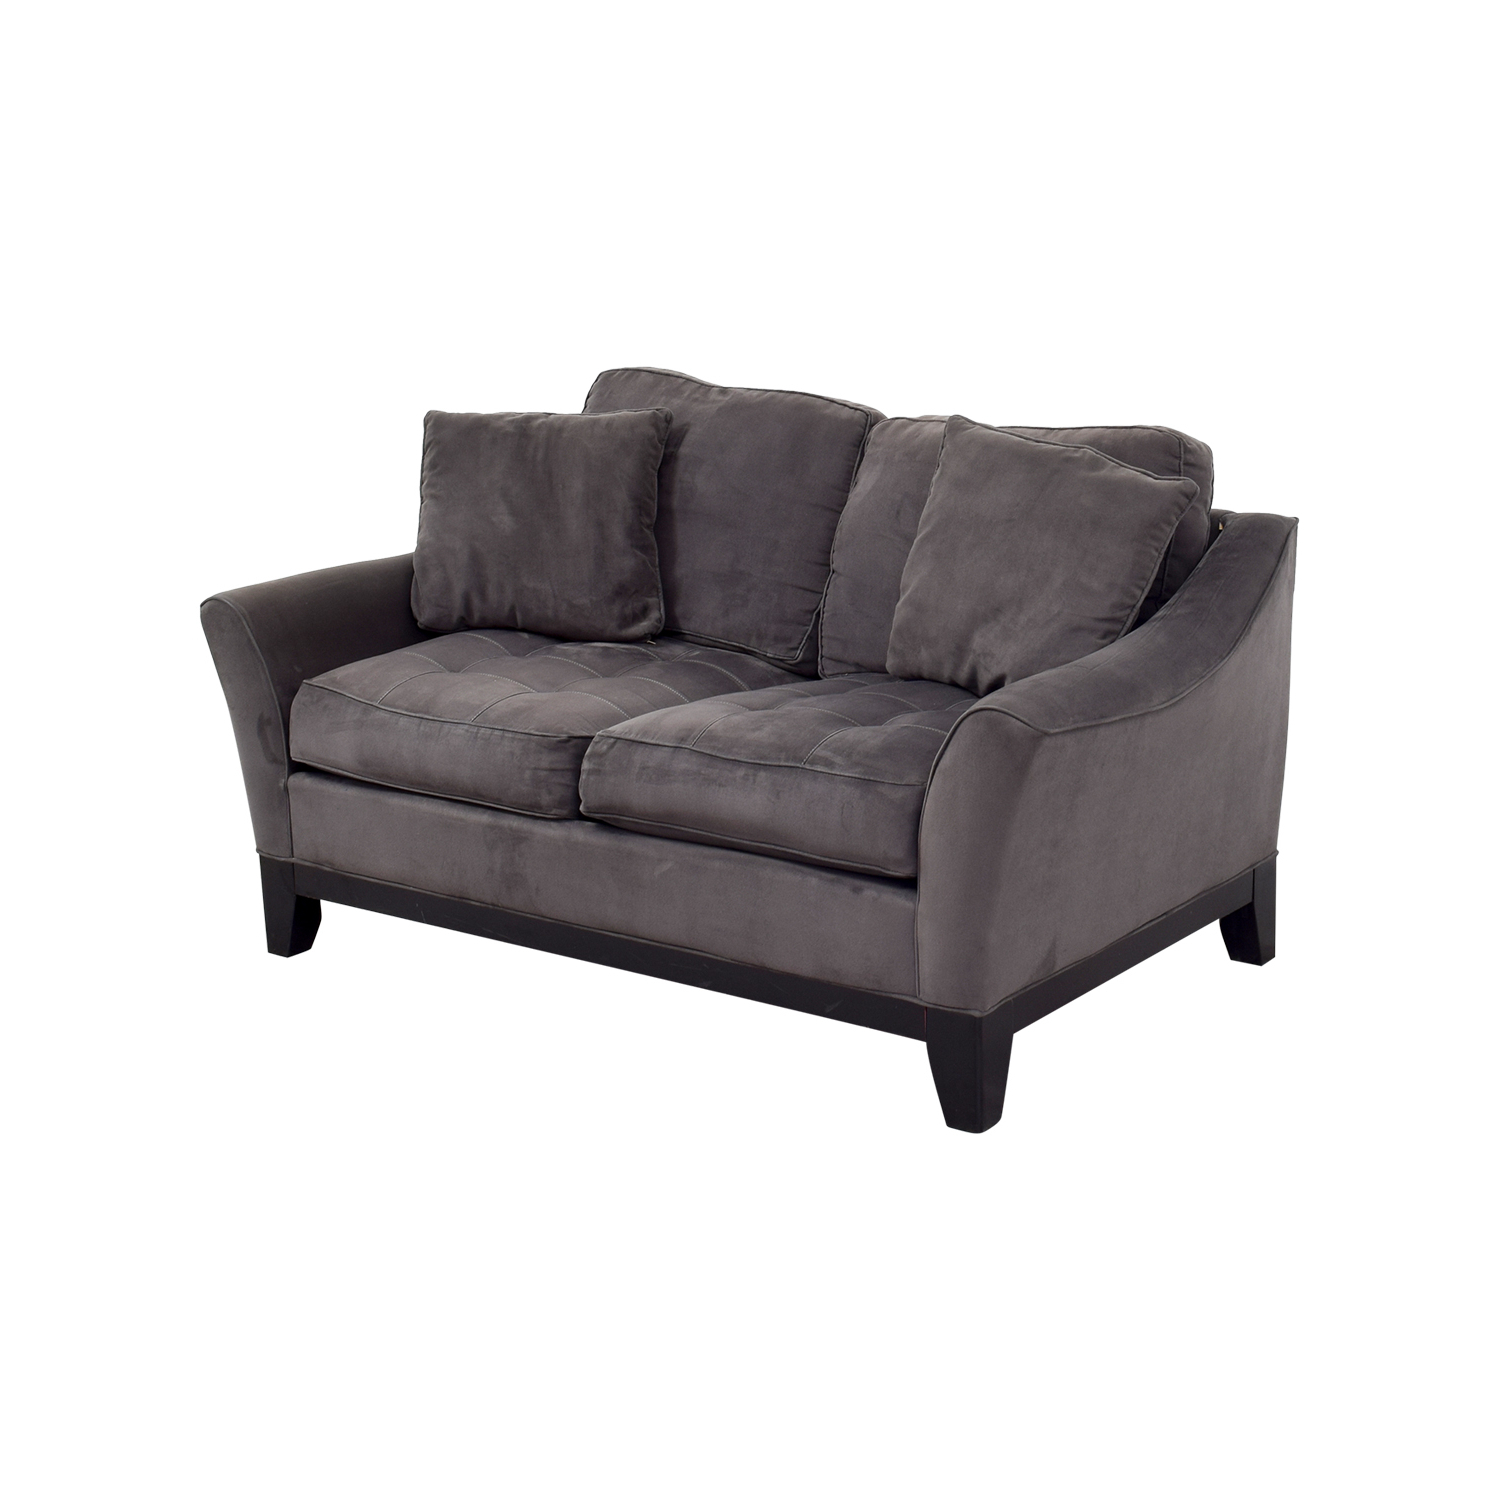 [%75% Off – Raymour & Flanigan Raymour & Flanigan Rory Slate Pertaining To Most Up To Date Rory Sofa Chairs|Rory Sofa Chairs With Regard To Best And Newest 75% Off – Raymour & Flanigan Raymour & Flanigan Rory Slate|Current Rory Sofa Chairs Inside 75% Off – Raymour & Flanigan Raymour & Flanigan Rory Slate|Newest 75% Off – Raymour & Flanigan Raymour & Flanigan Rory Slate With Regard To Rory Sofa Chairs%] (View 2 of 20)